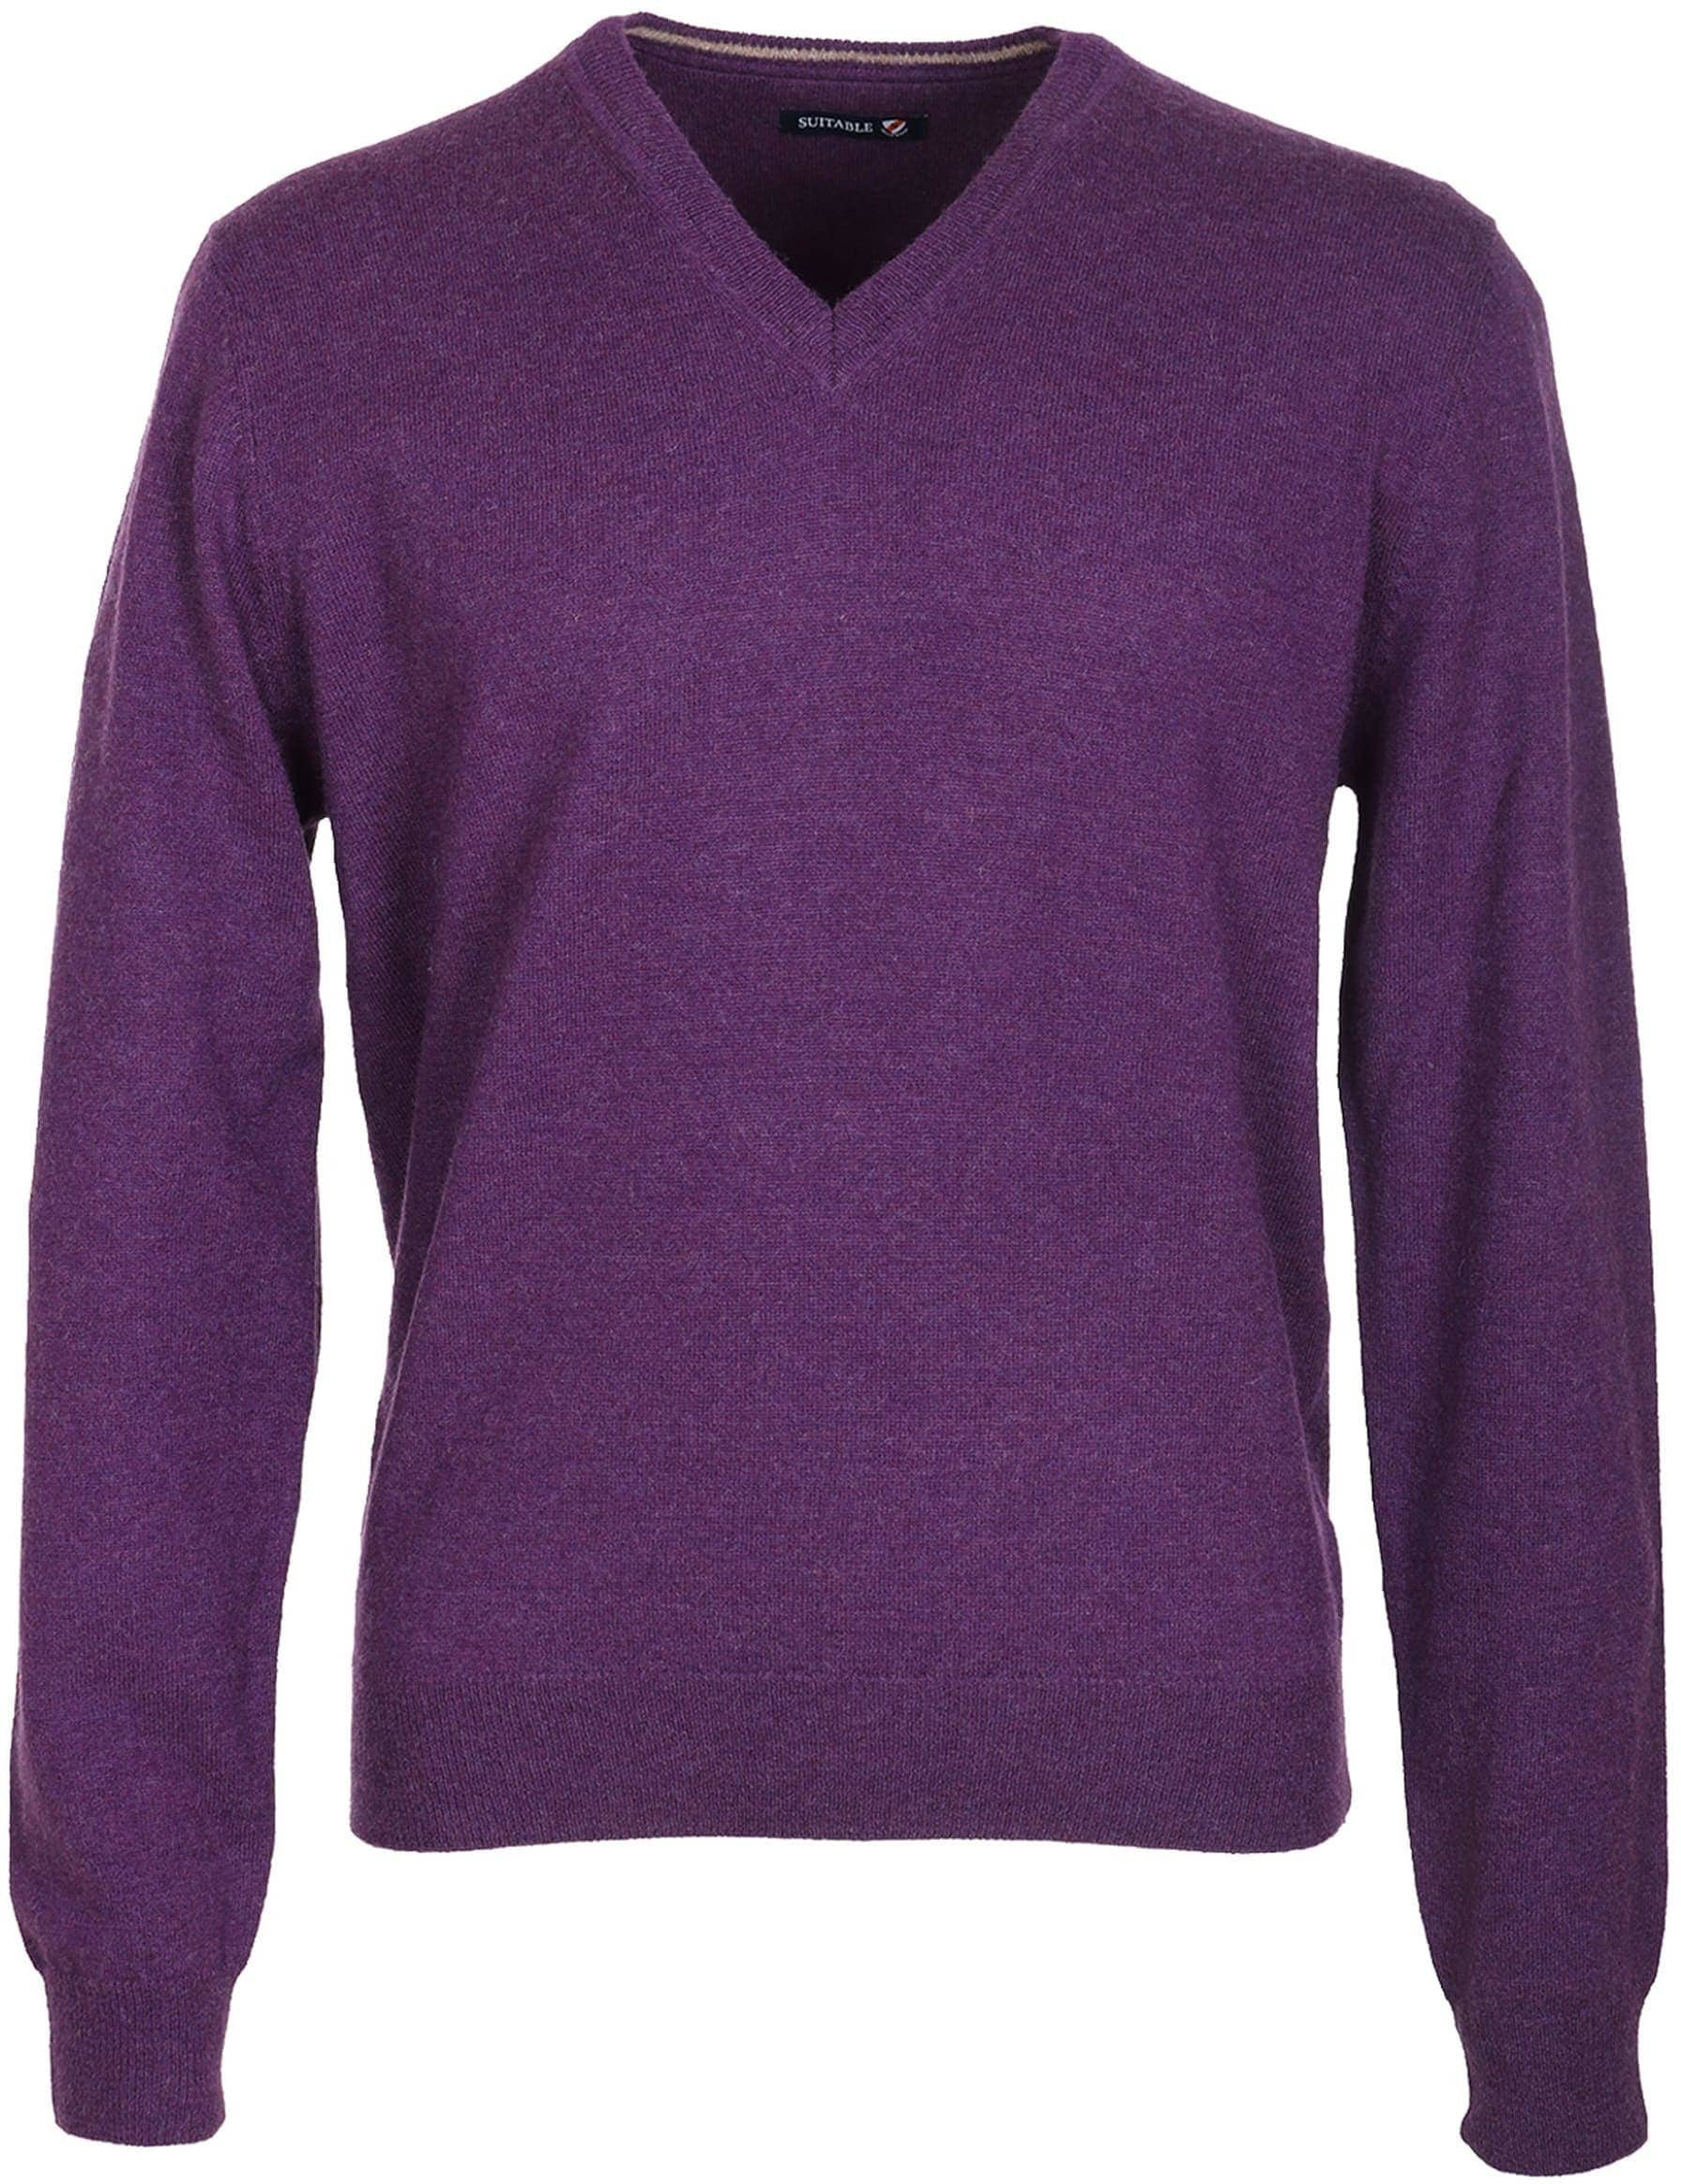 Suitable Pullover Lamswol Paars foto 0